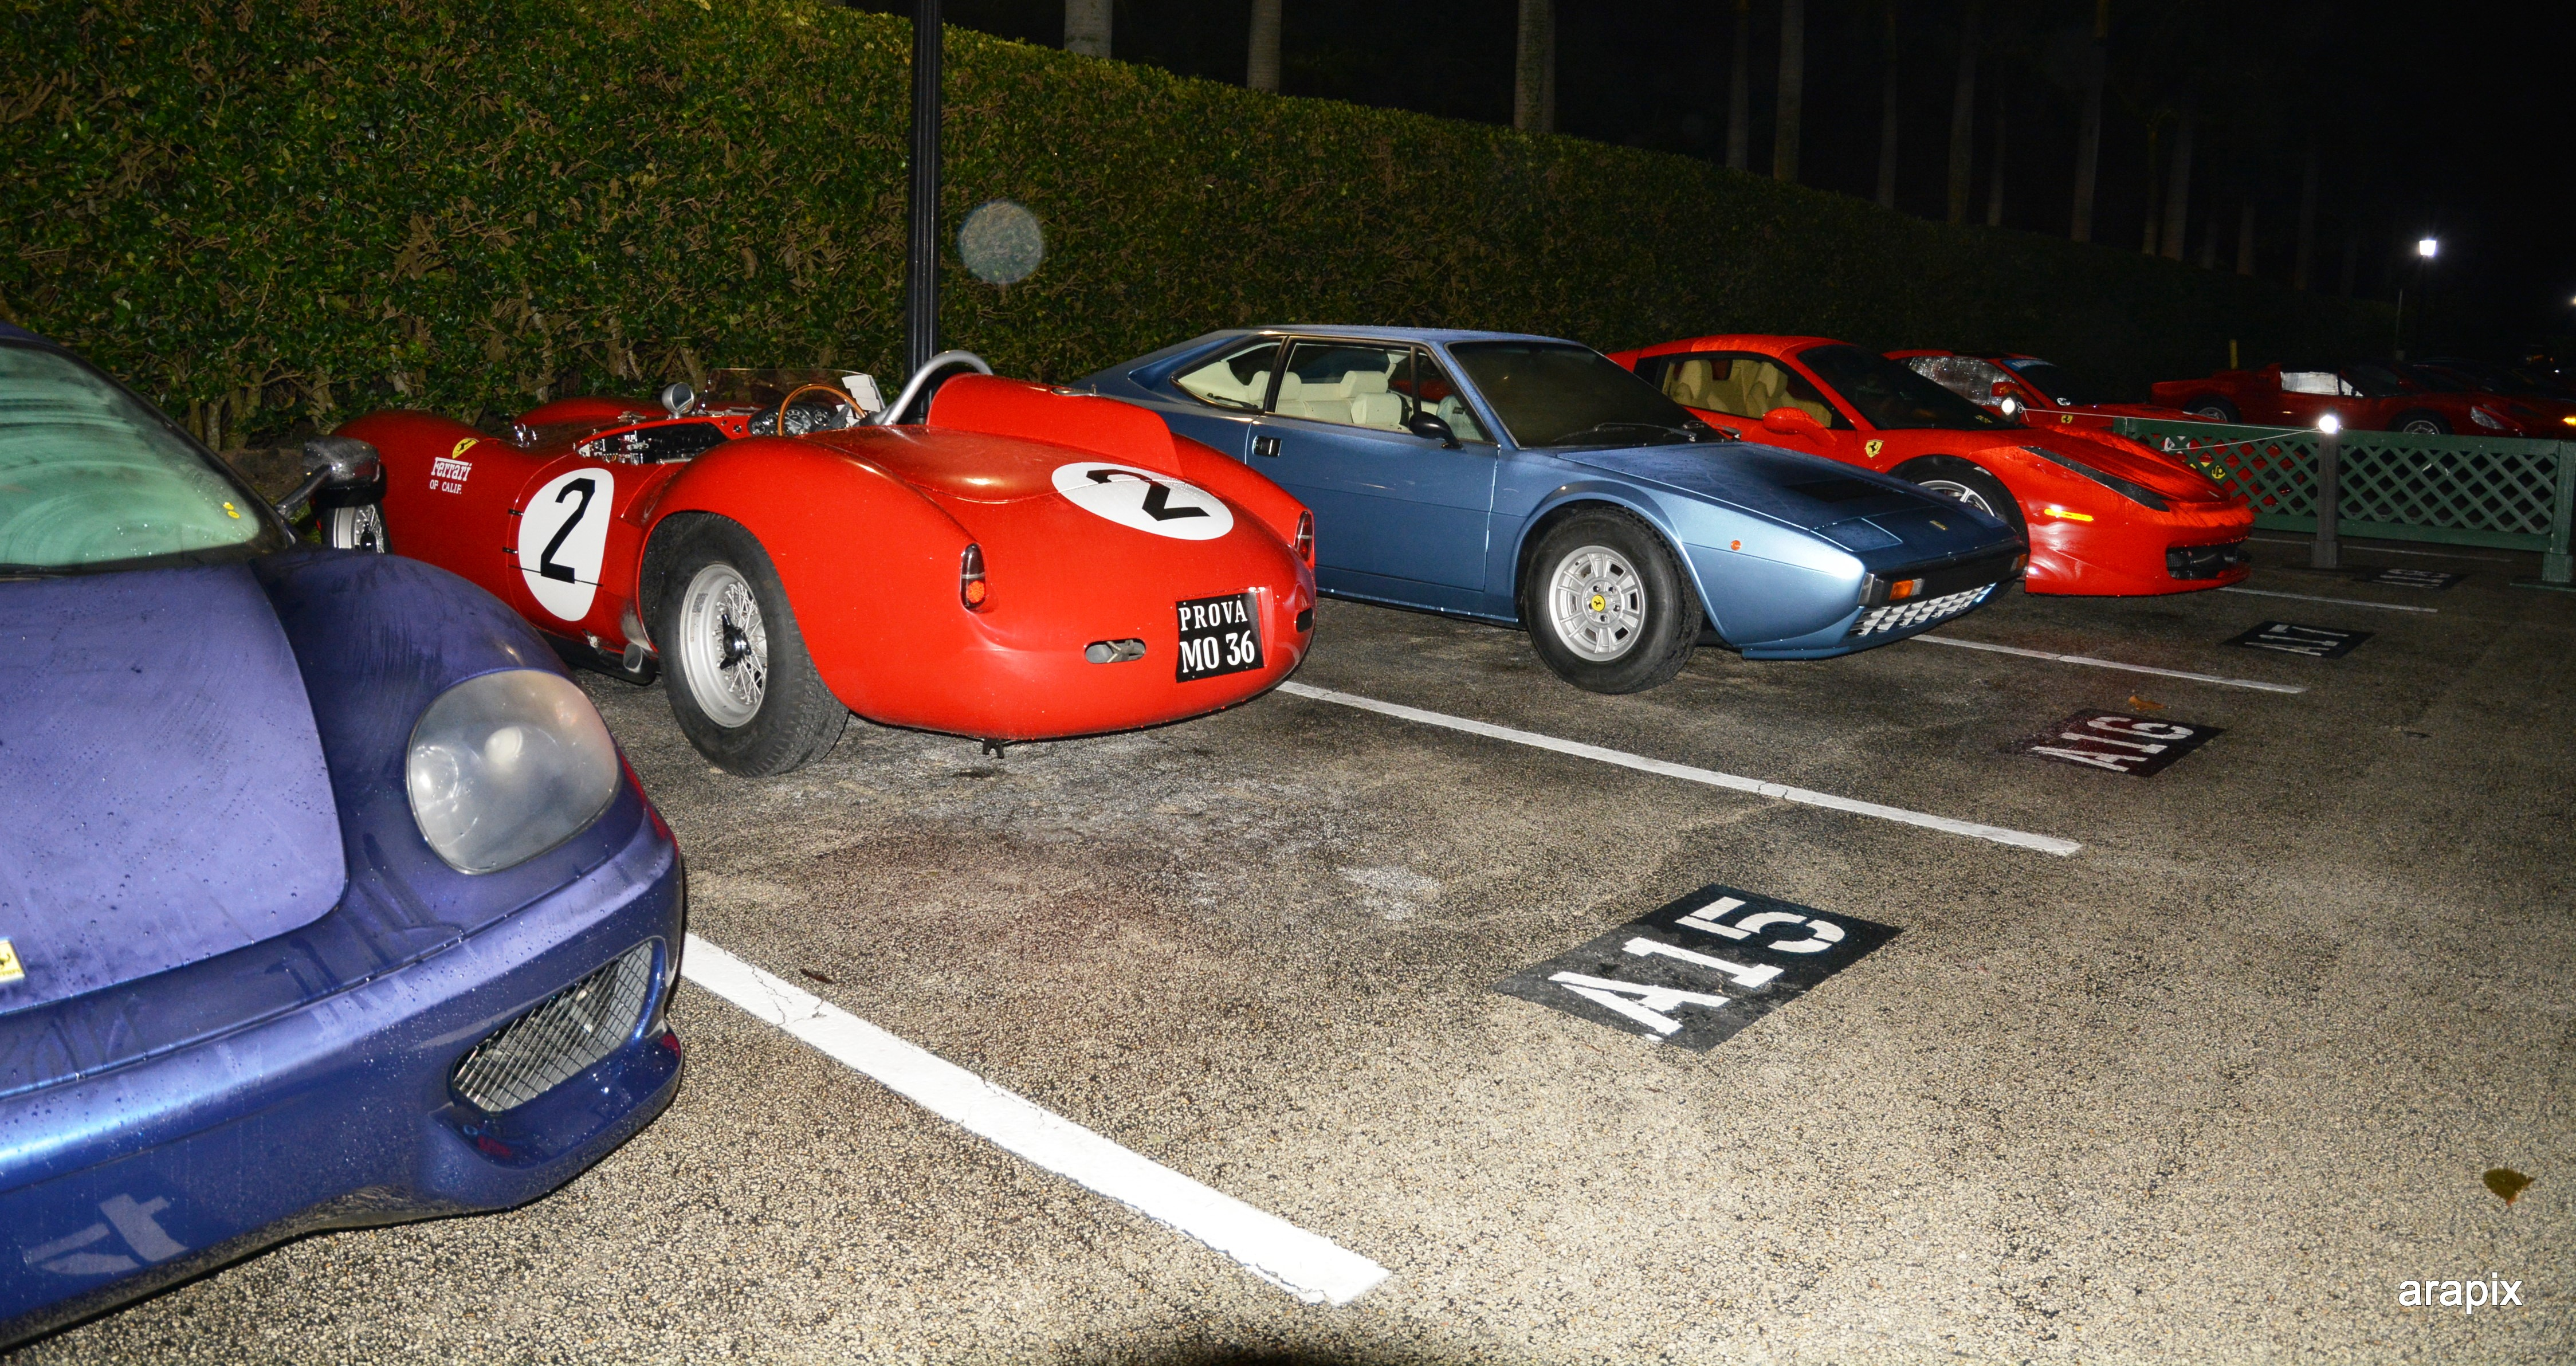 the parking lot cavallino -jet center reception